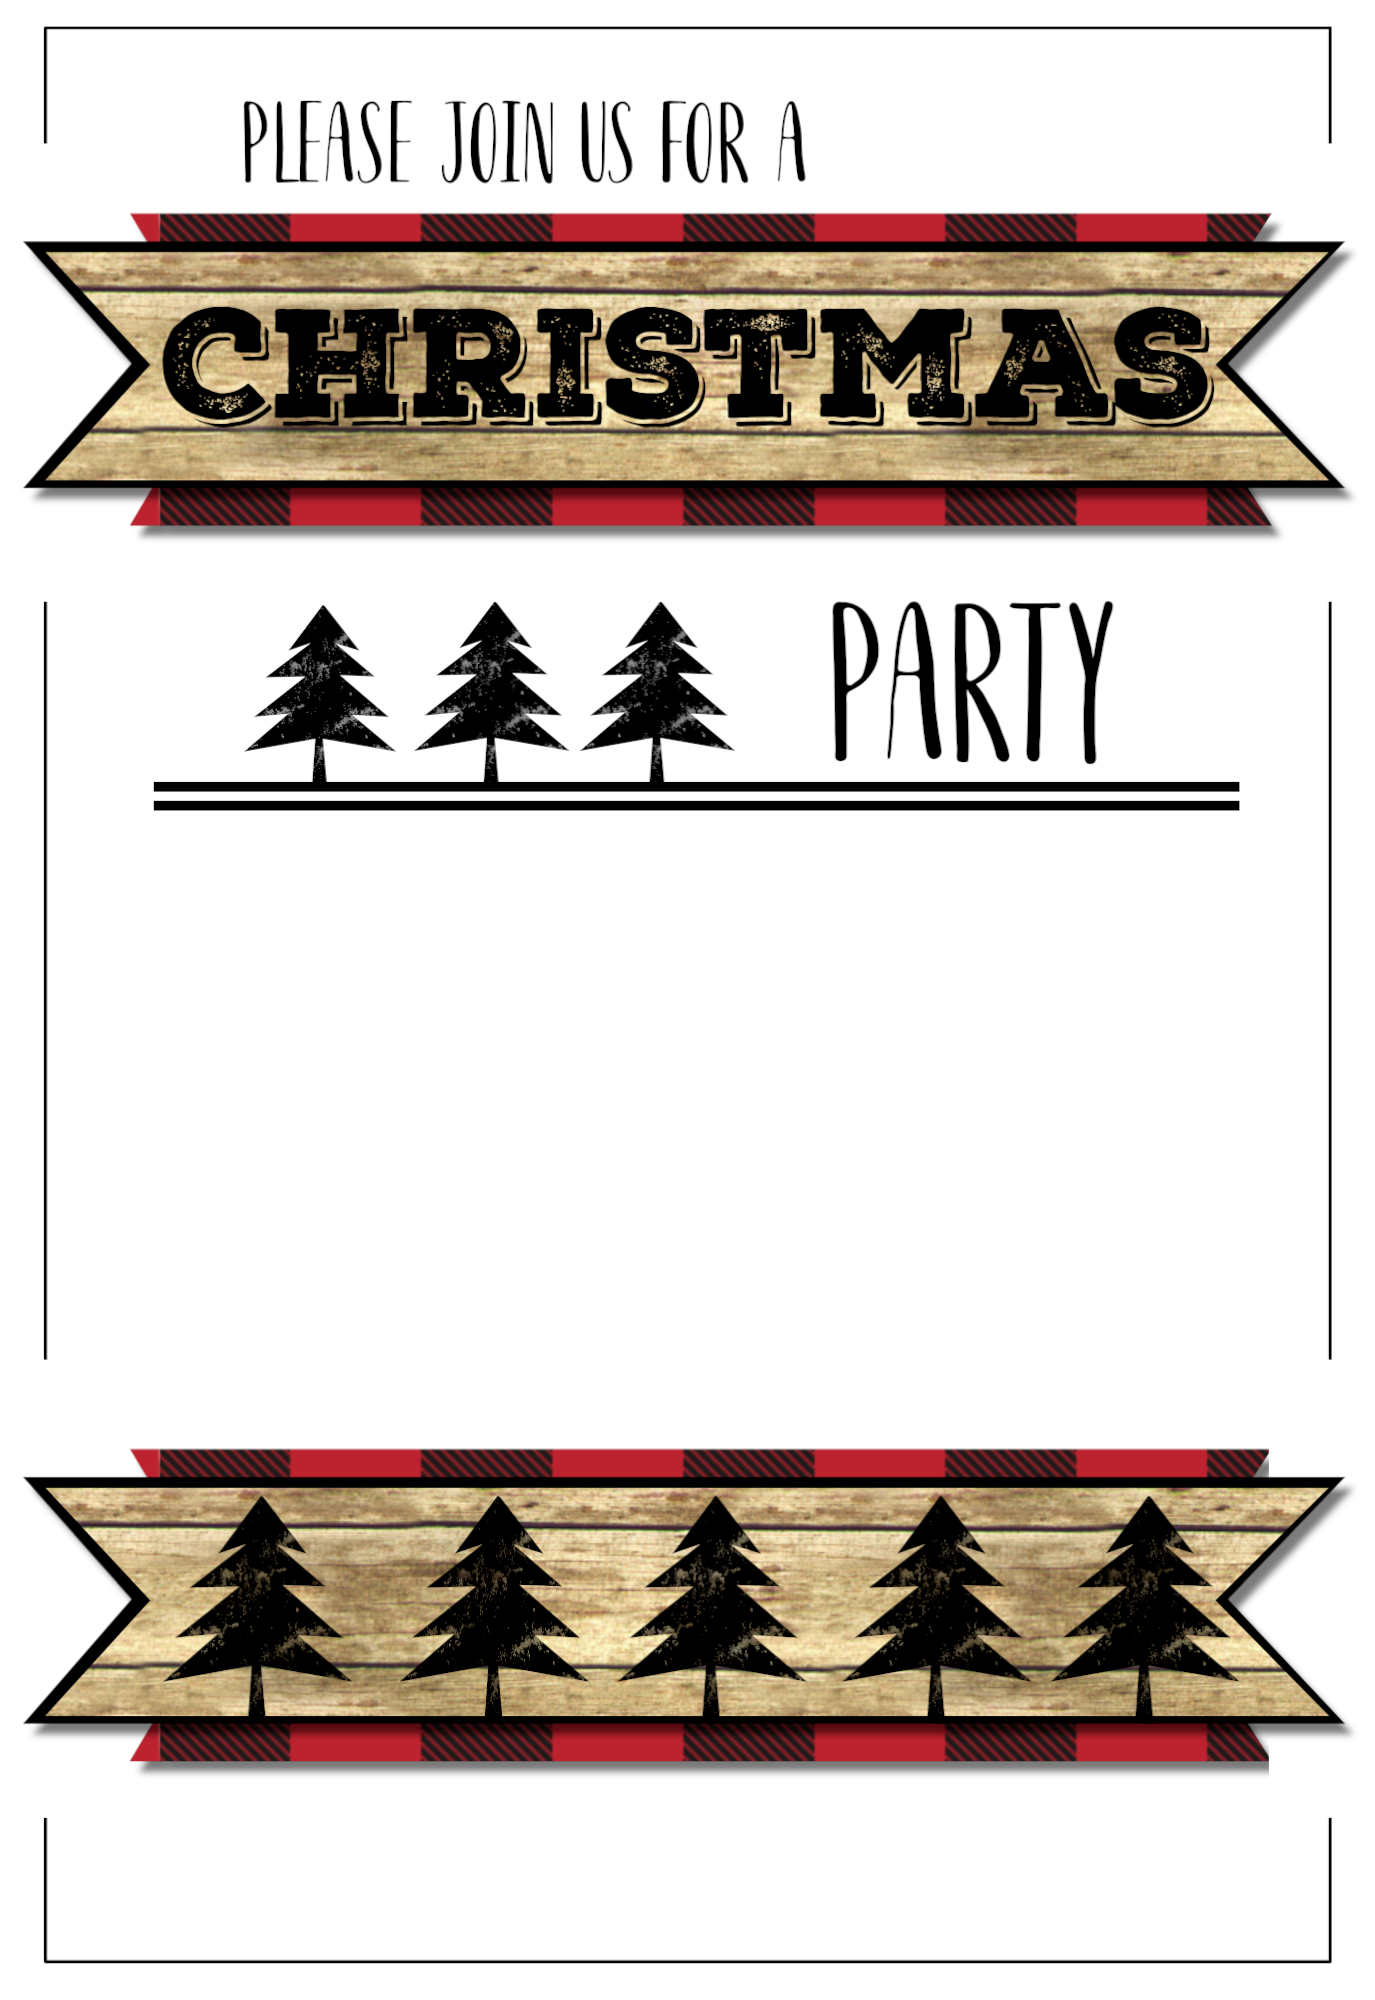 Christmas party invitation templates free printable paper trail design christmas party invitation templates free printable easy to customize christmas party lumberjack invitation stopboris Image collections